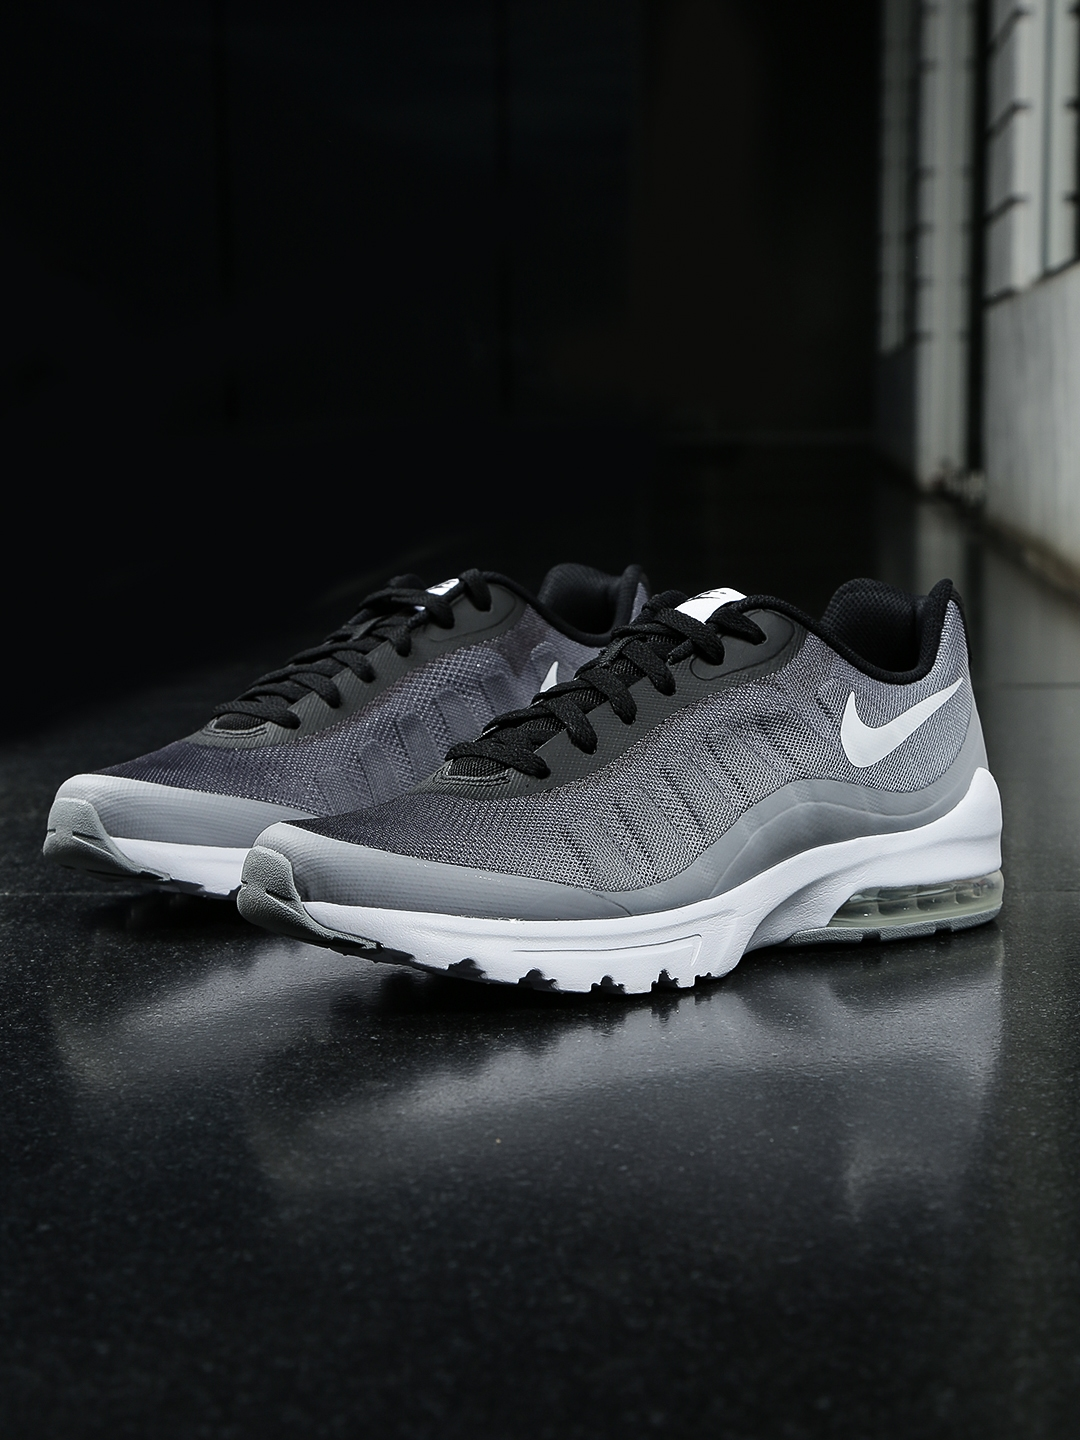 sports shoes 47caa 6a0eb 11508330679276-Nike-Men-Grey-AIR-MAX -INVIGOR-PRINT-Sneakers-7211508330679070-1.jpg